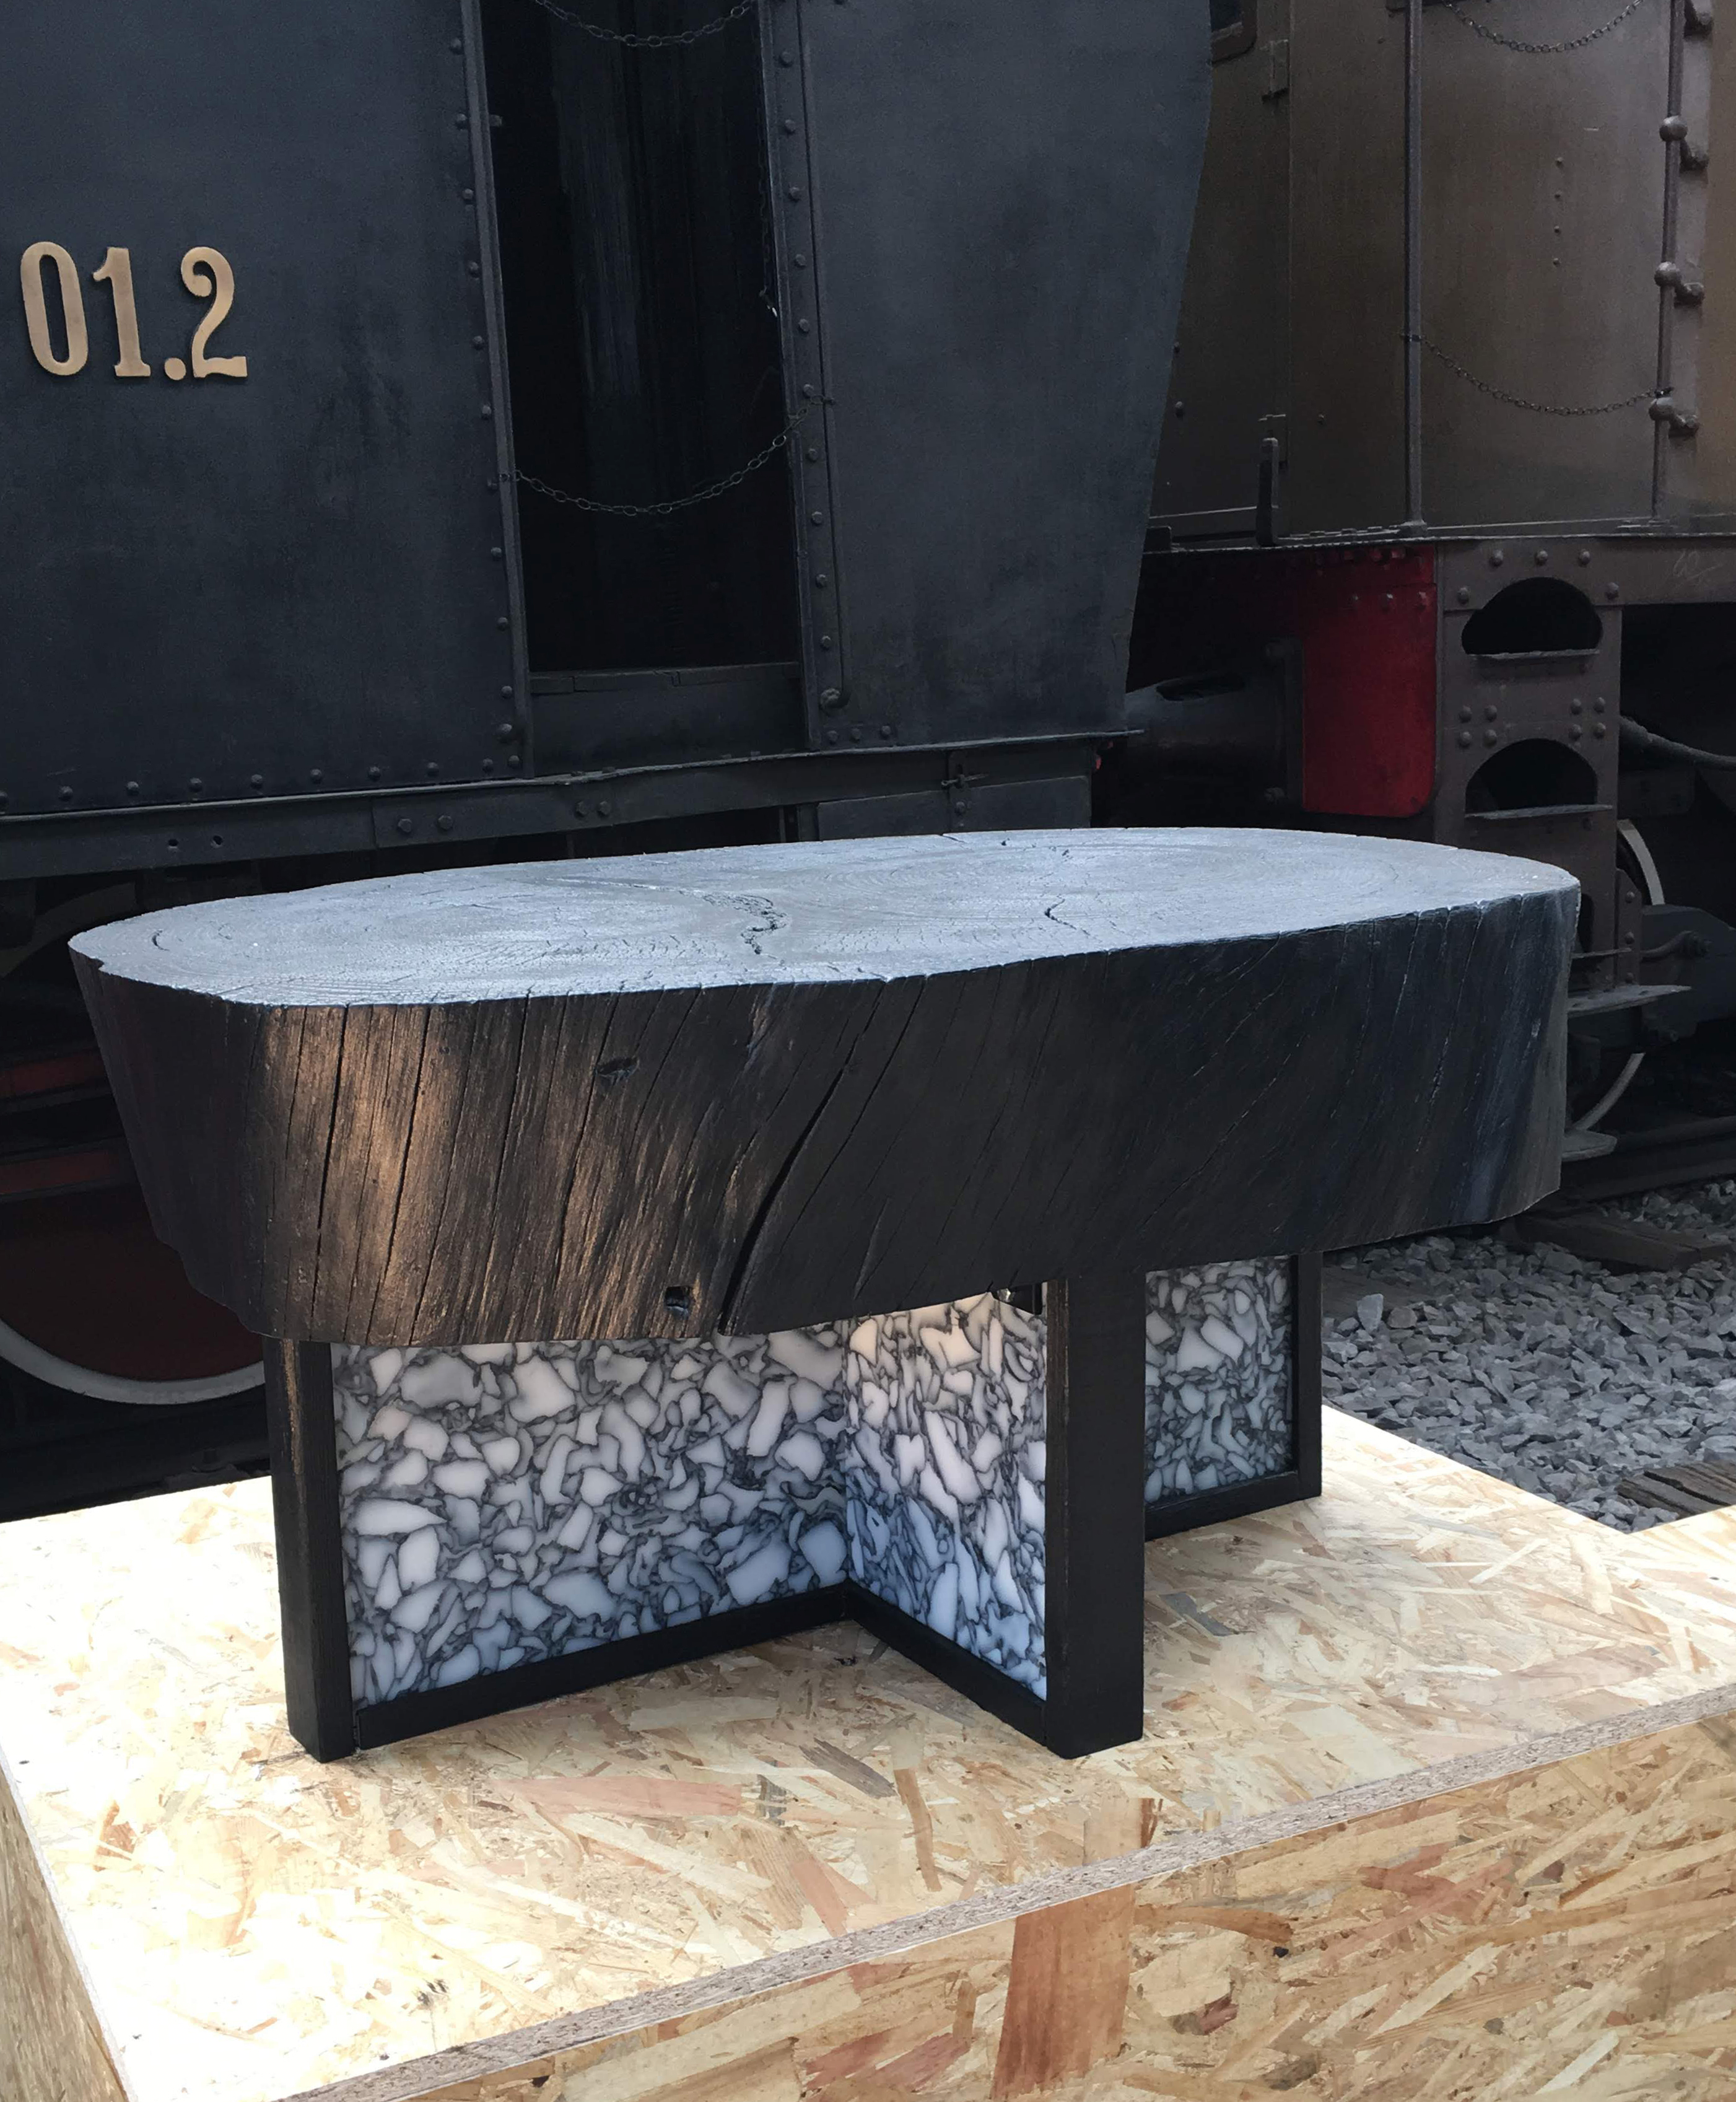 Black coffee table with wooden top and recycled plastic base; one of the plastic recycling design projects joining the Guiltless Plastic Initiative.